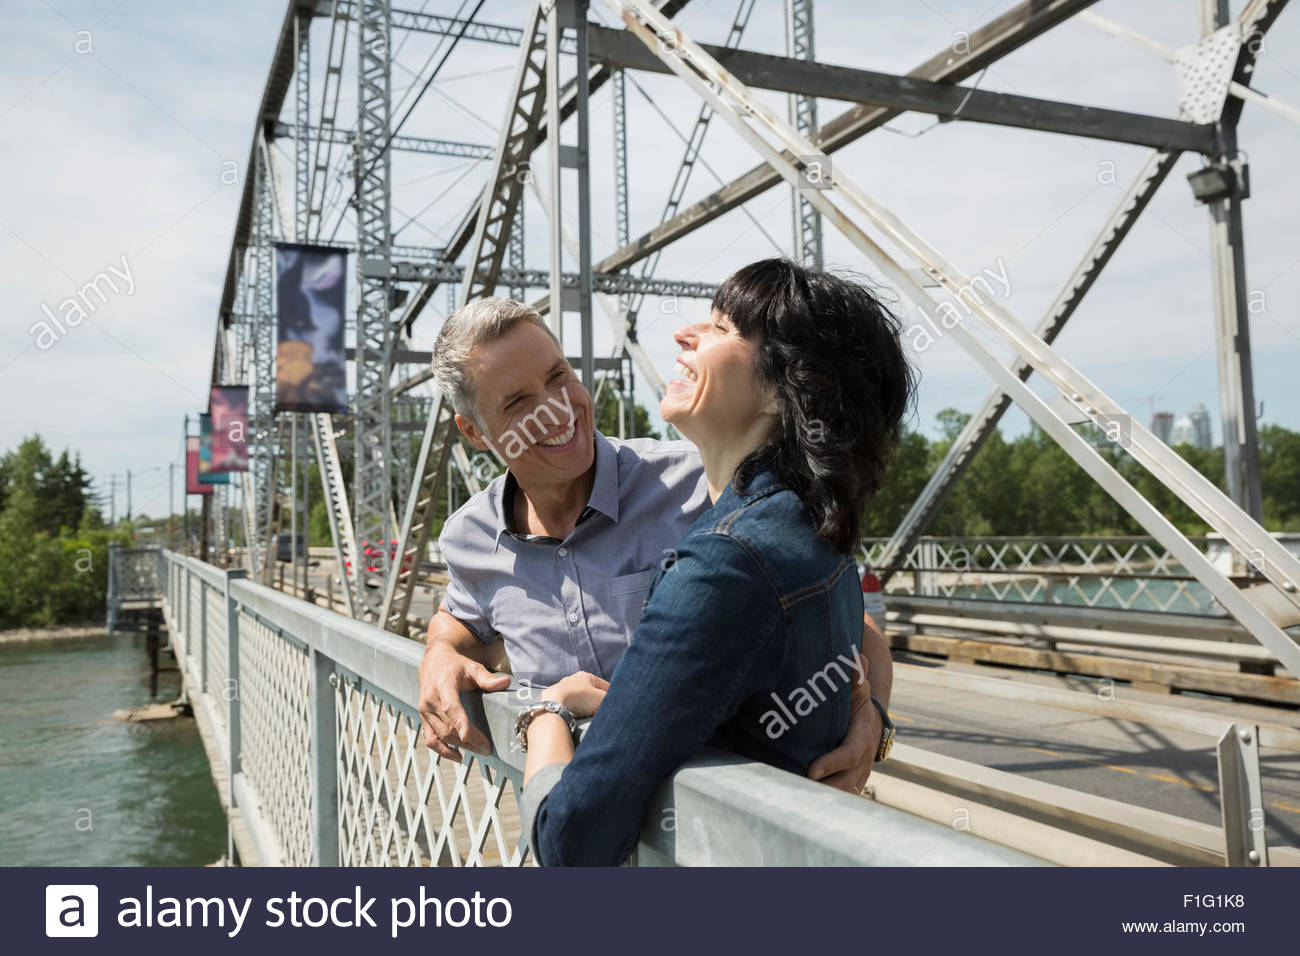 Laughing couple on bridge over river - Stock Image